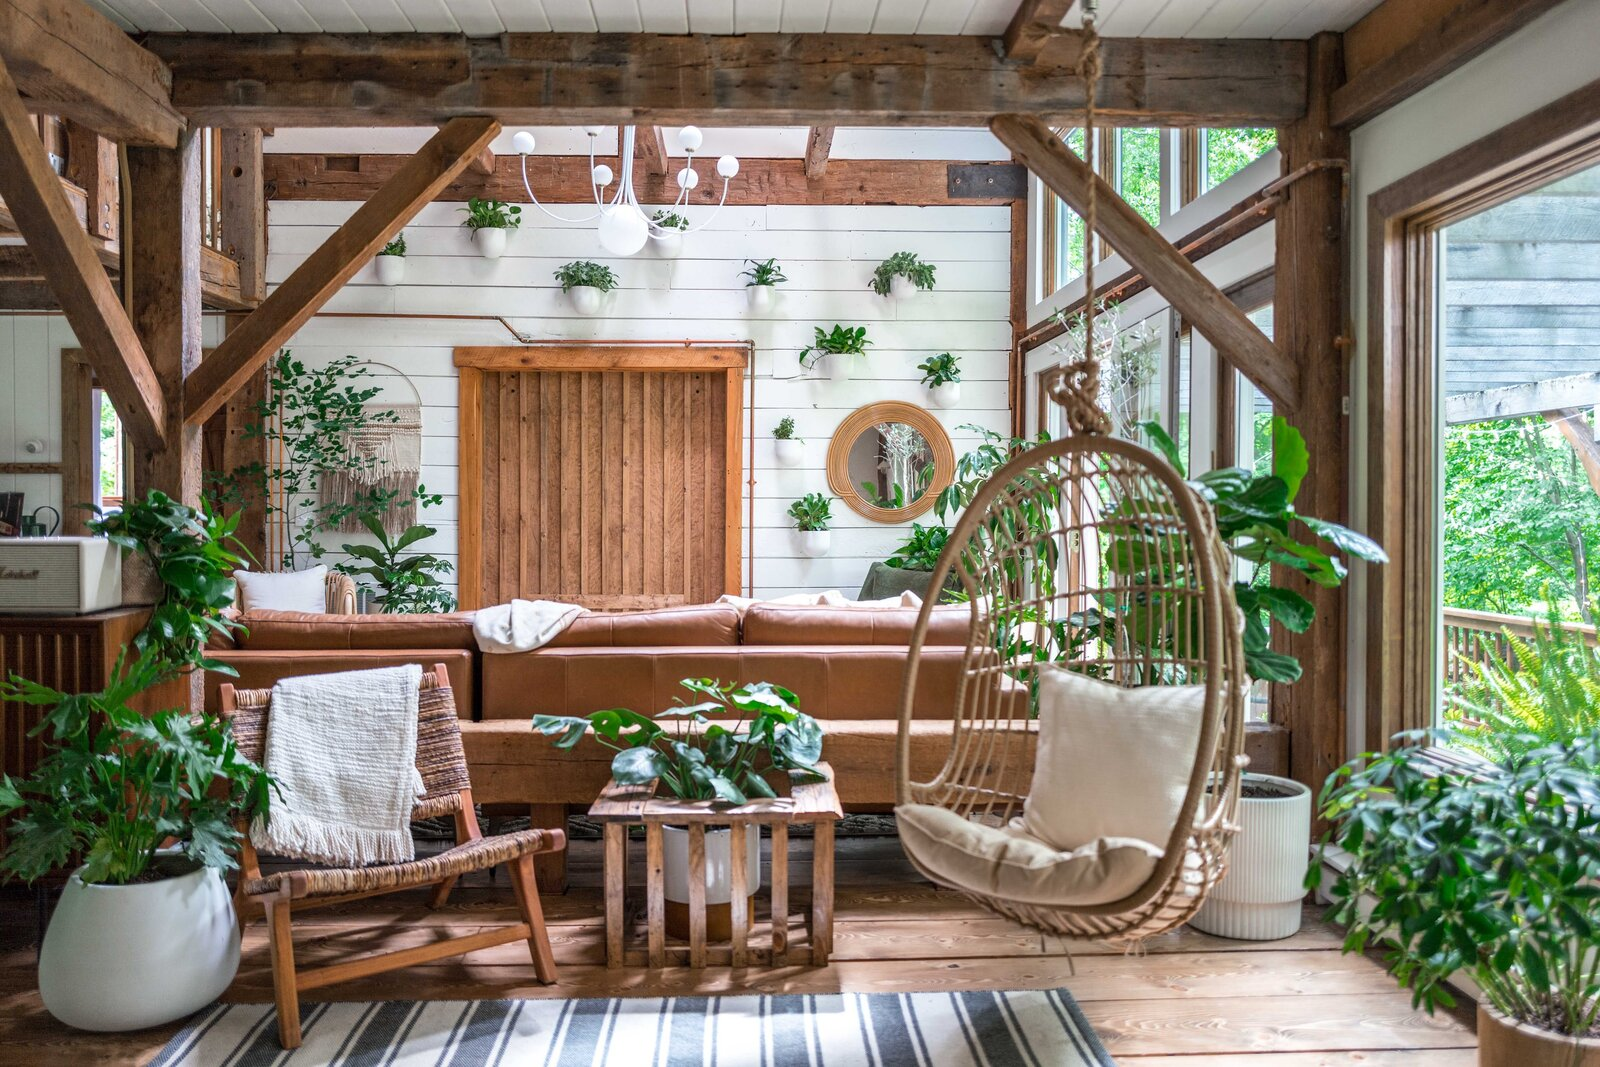 The Hunter Barnhouse by Danielle and Ely Franko living room with hanging chair and plant wall